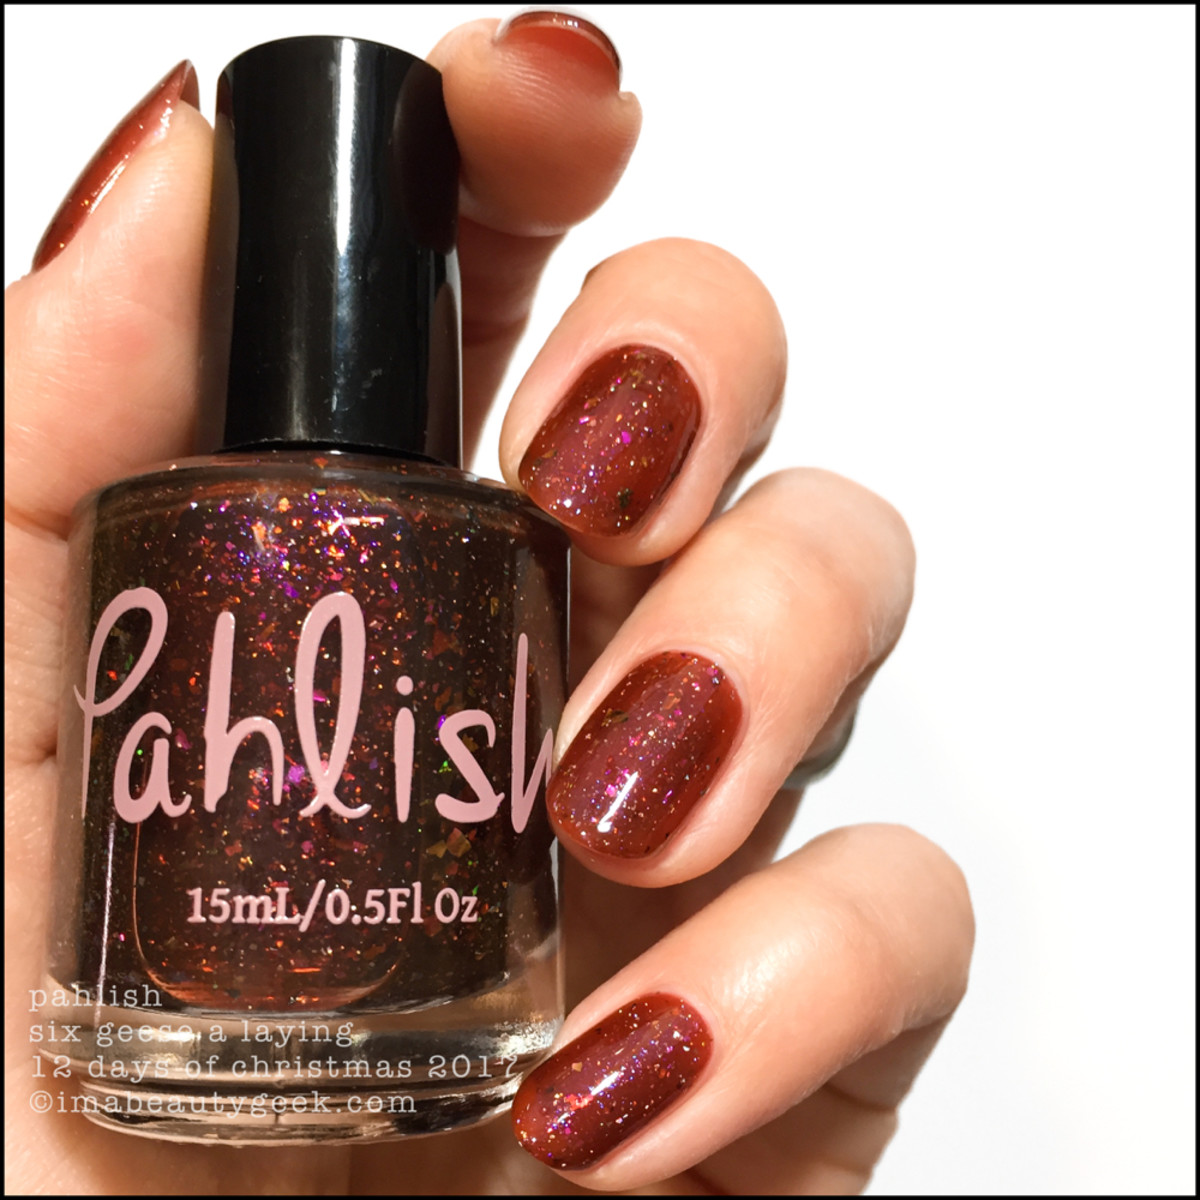 Pahlish Six Geese a Laying - Pahlish 12 Days of Christmas 2017 1